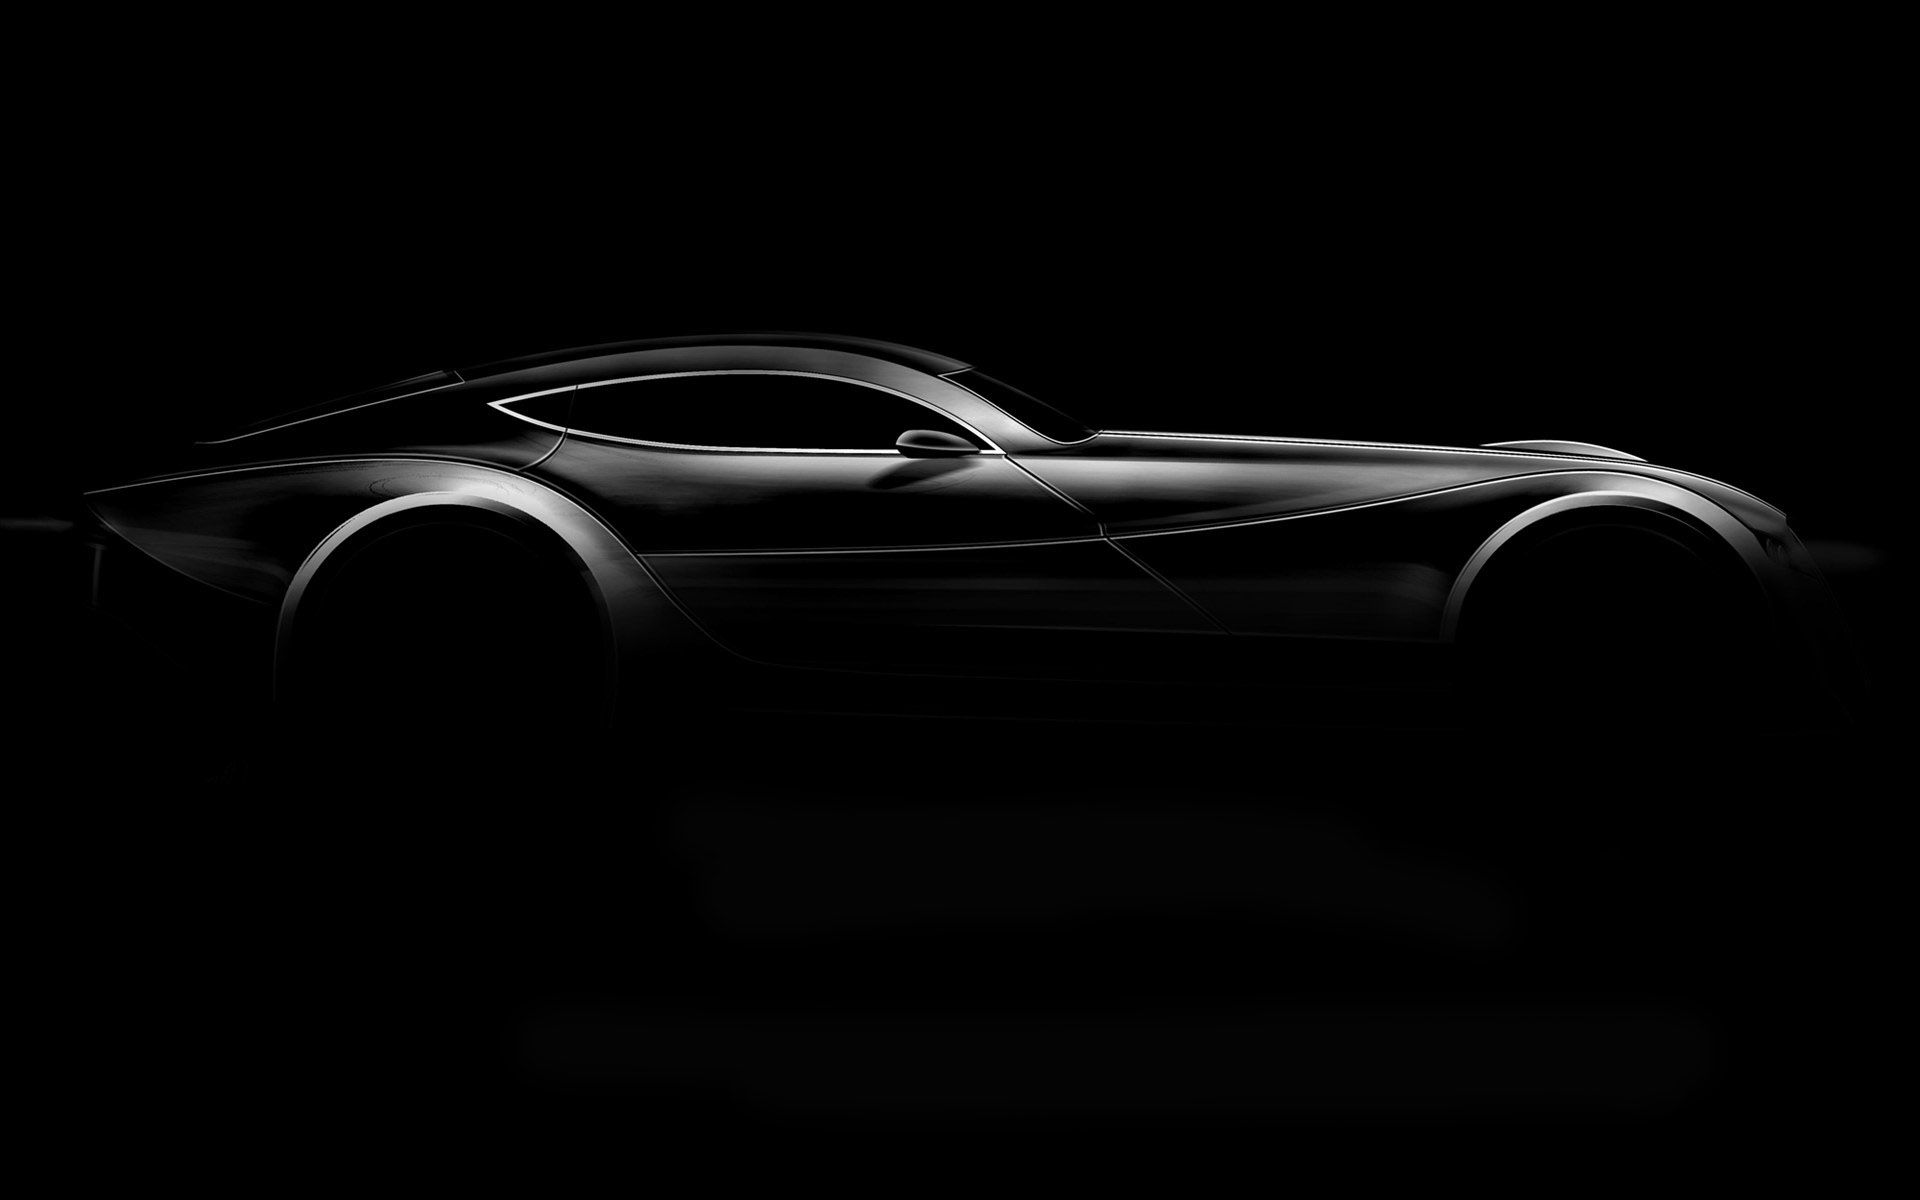 Black Car Hd Wallpapers Top Free Black Car Hd Backgrounds